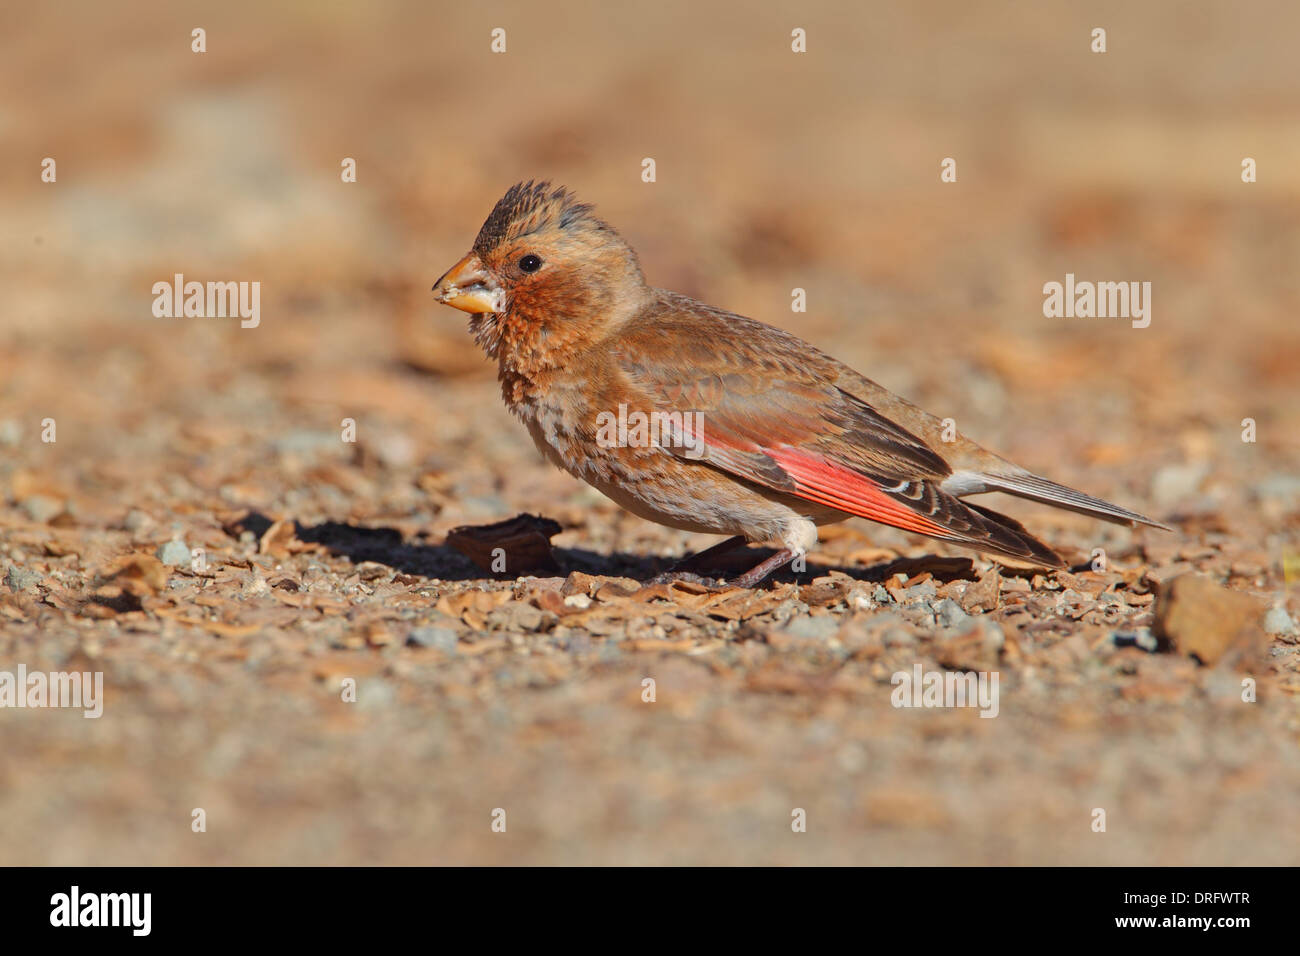 Crimson-winged Finch (Rhodopechys sanguinea aliena) North African subspecies, adult male, Morocco, March - Stock Image